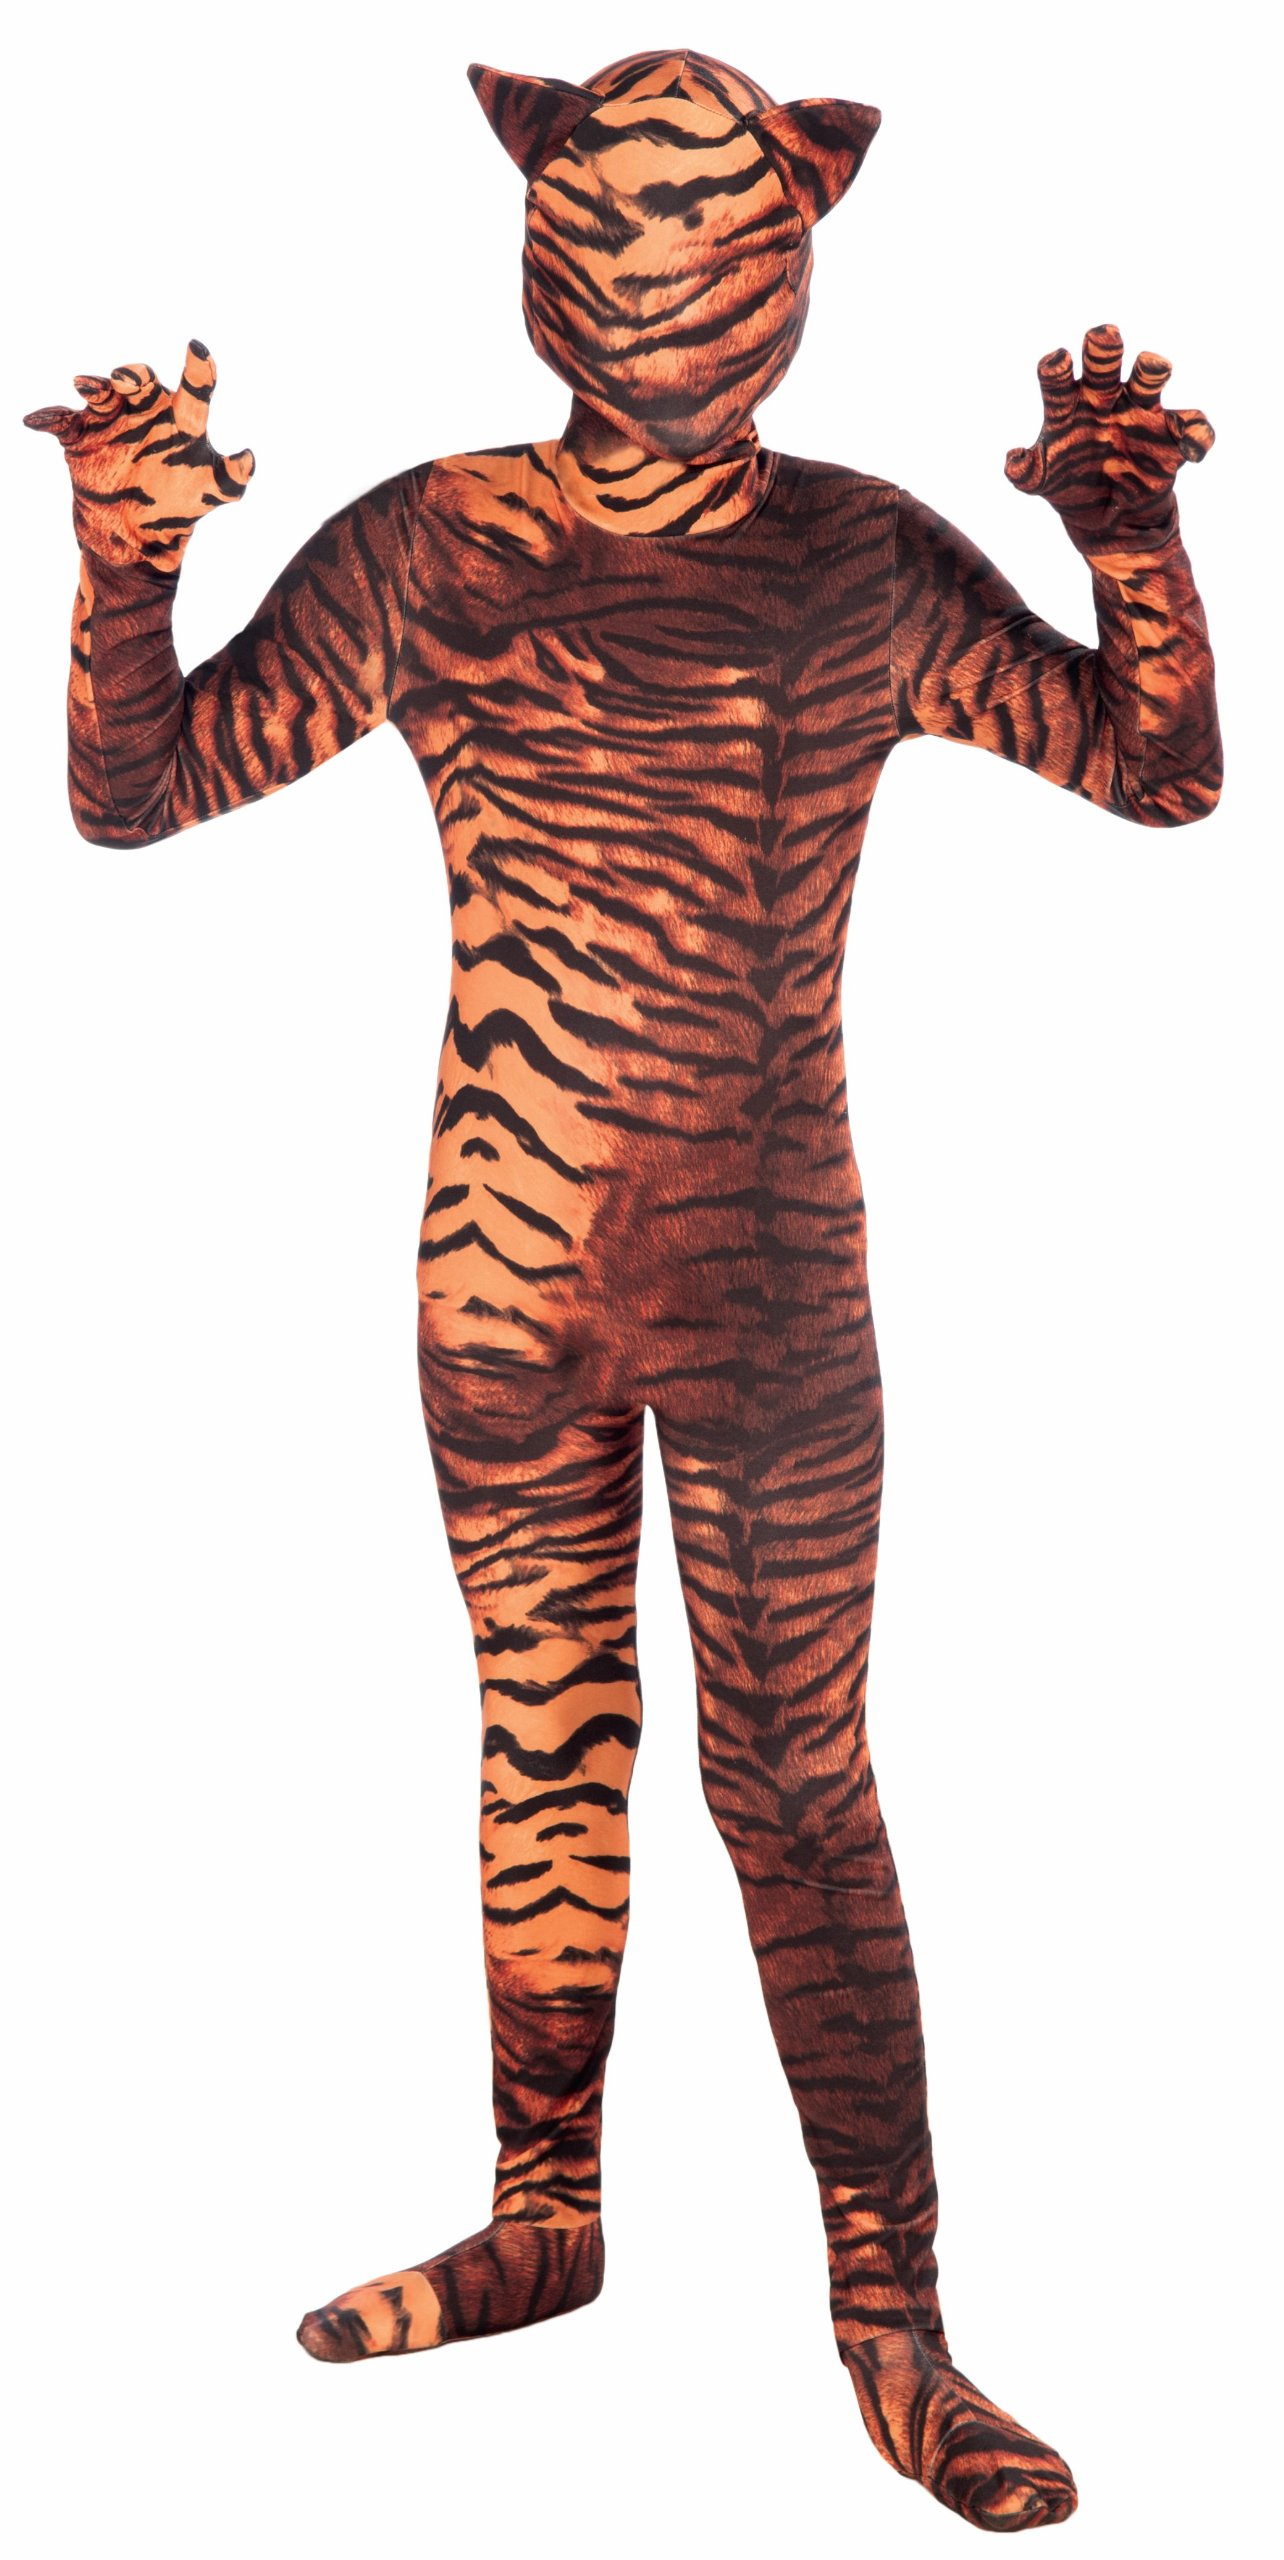 - 81QVrx9FsWL - Forum Novelties I'm Invisible Costume Stretch Body Suit, Tiger Print, Child Medium